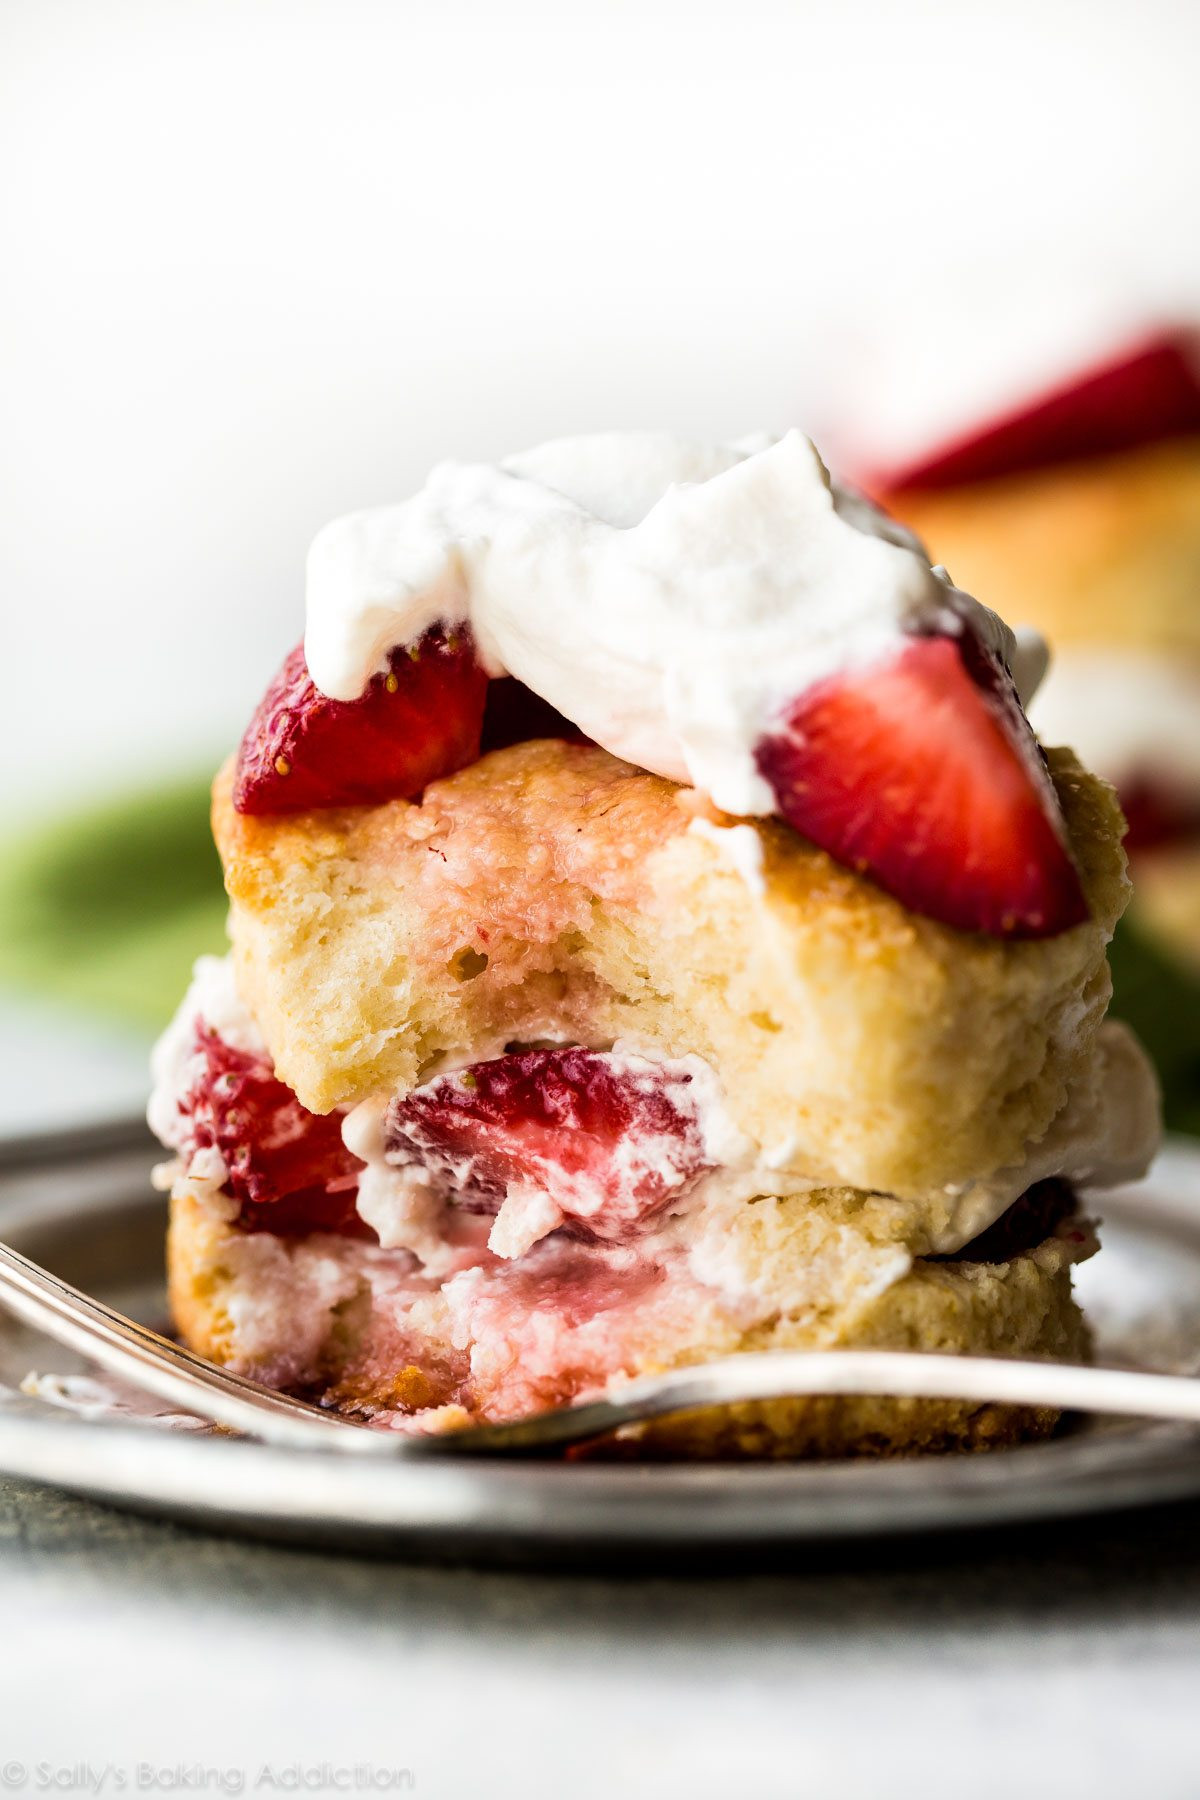 Easy Shortcake Recipe  Easy Homemade Strawberry Shortcake Sallys Baking Addiction